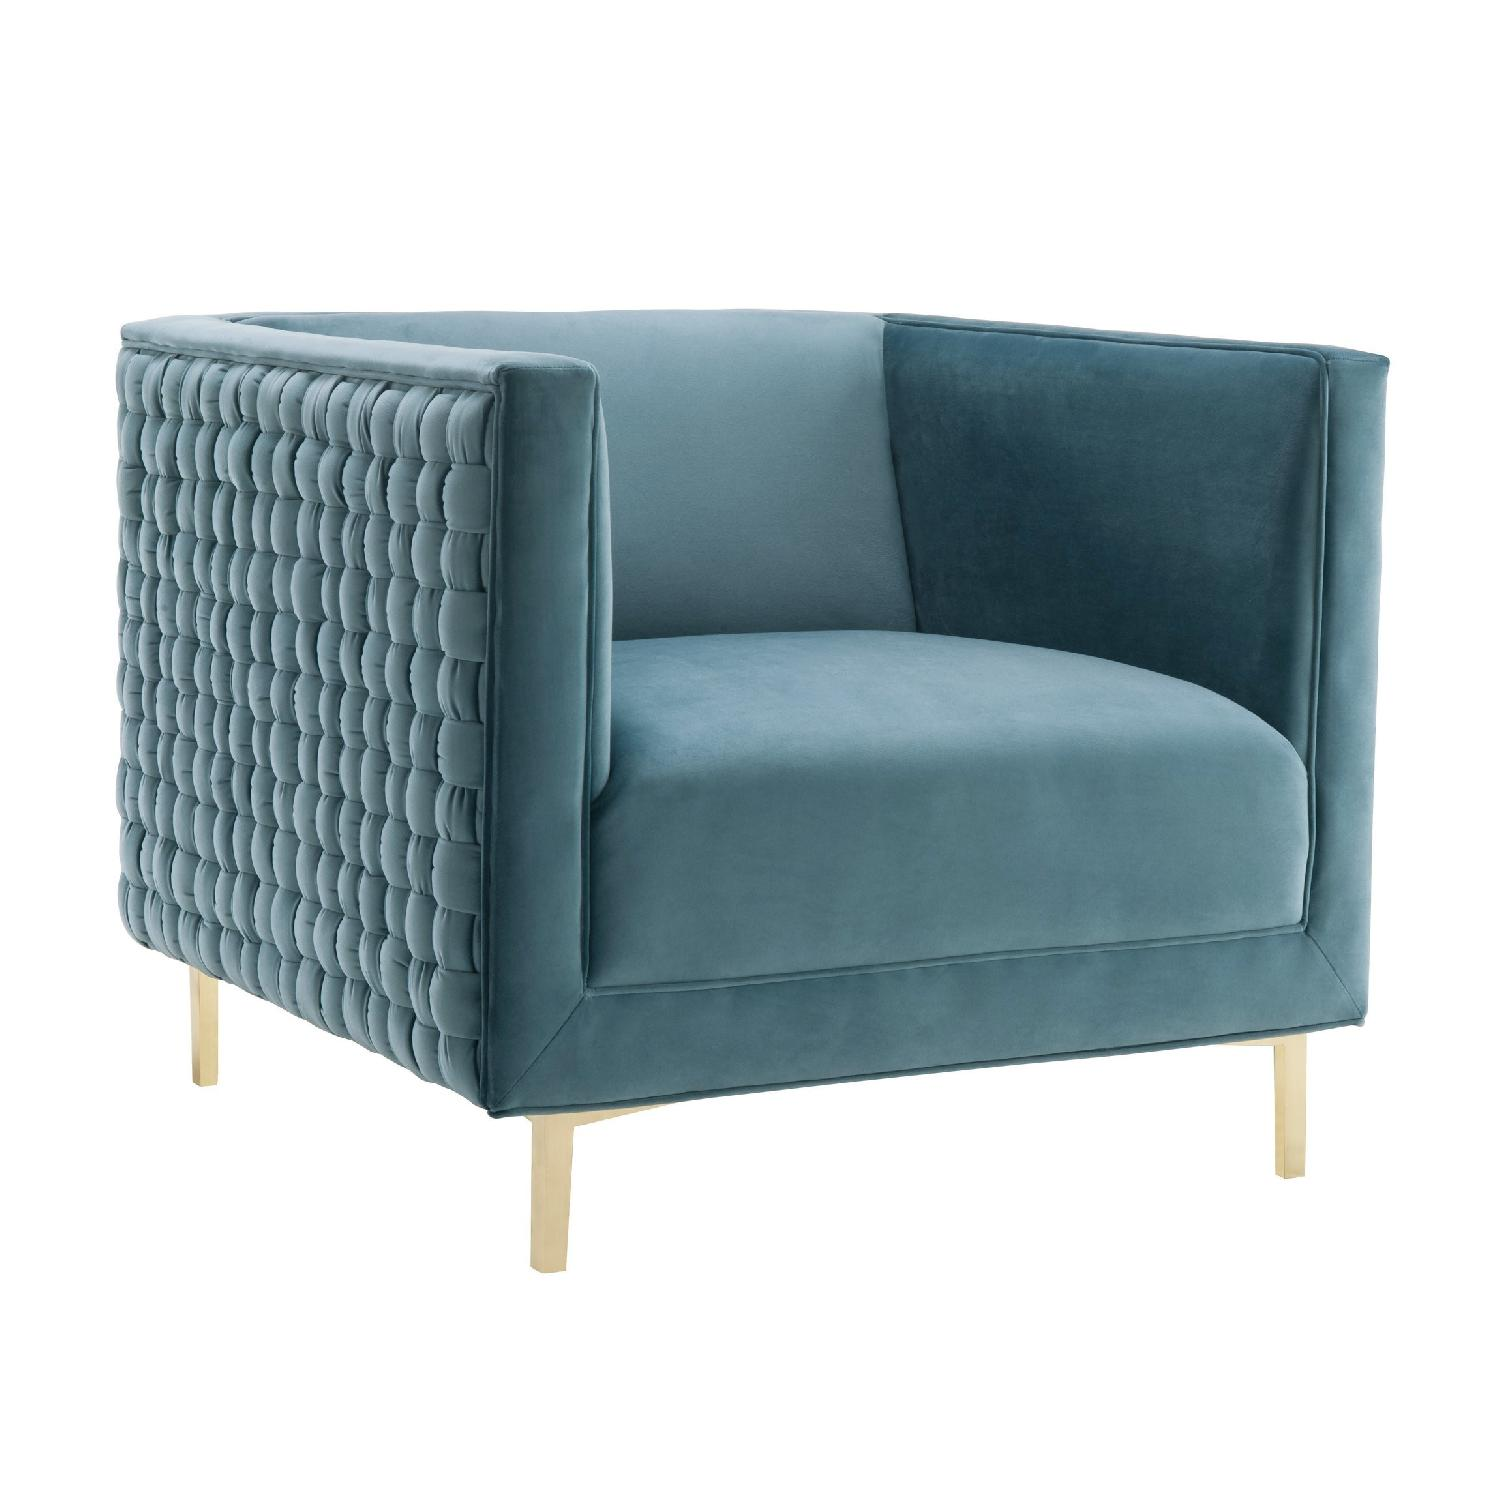 TOV Bristol Sea Blue Velvet Chair with Lucite Legs - AptDeco